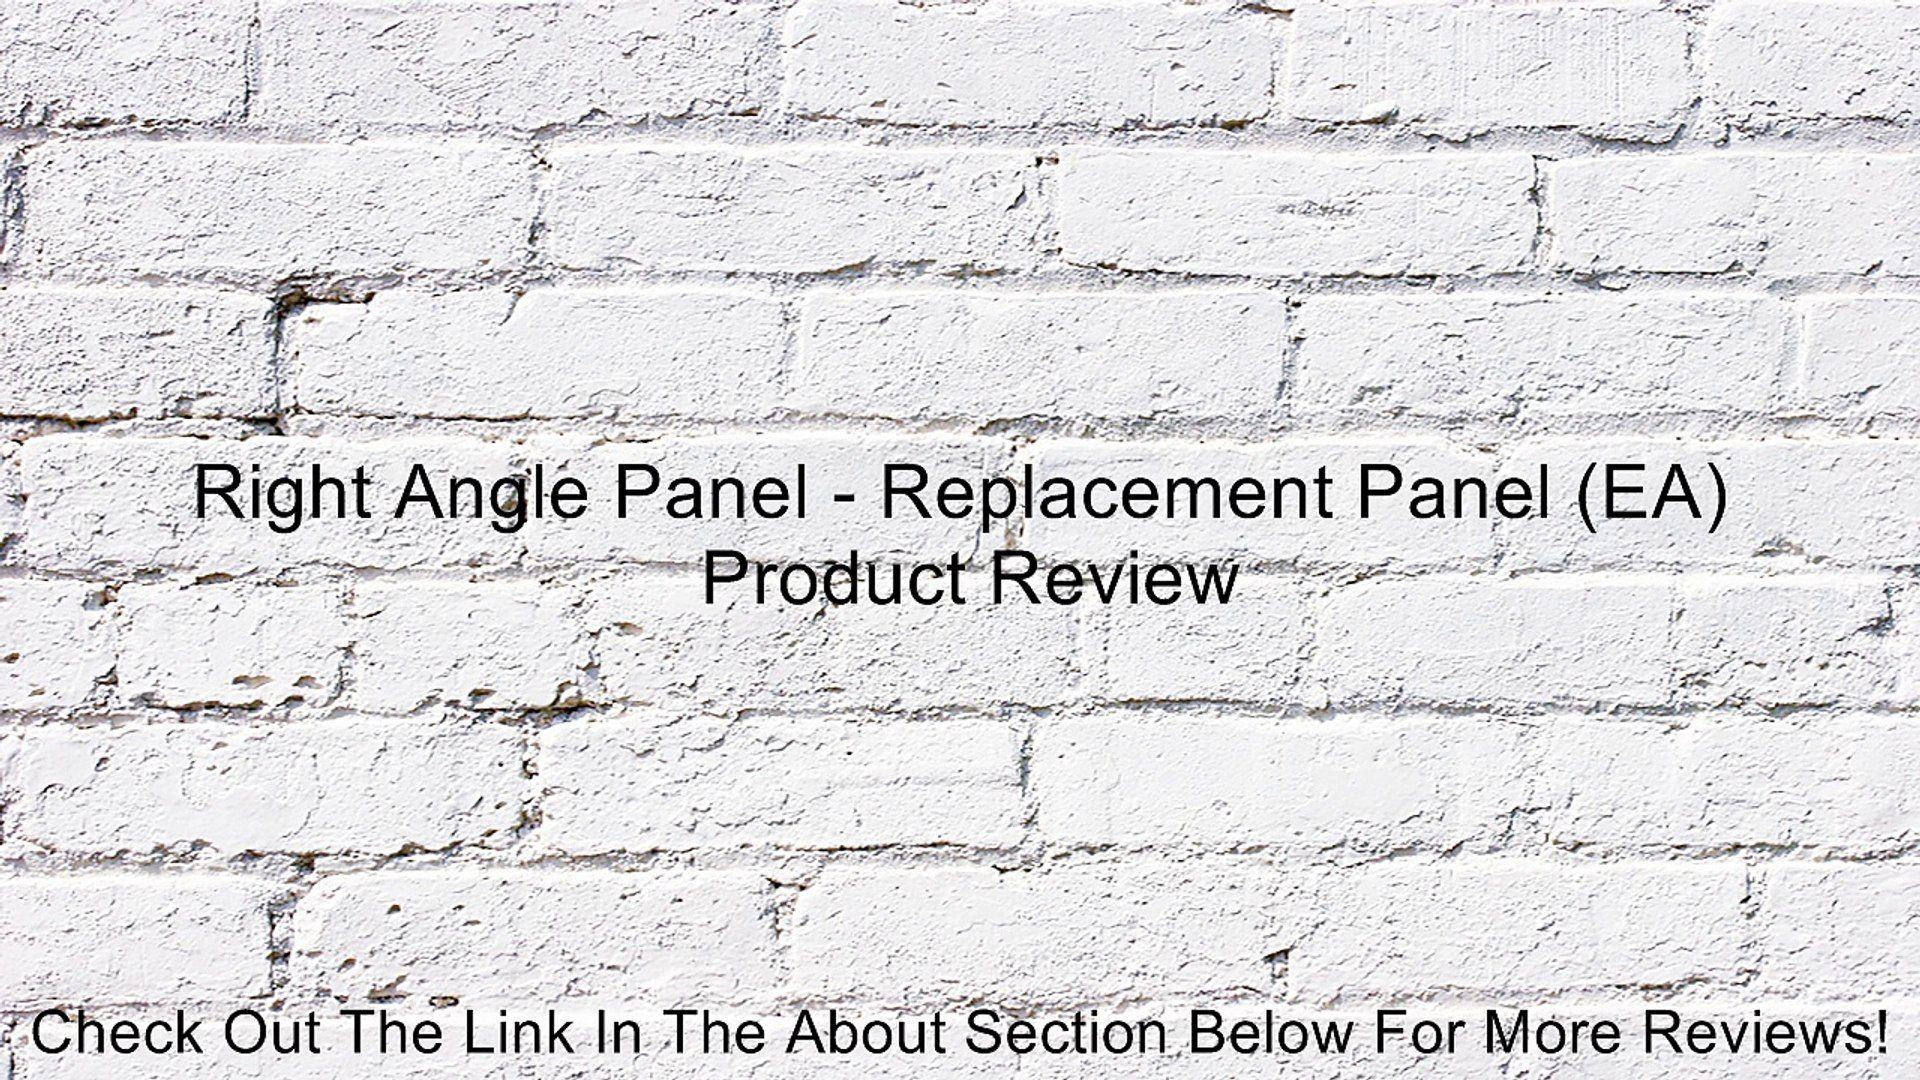 Right Angle Panel - Replacement Panel (EA) Review